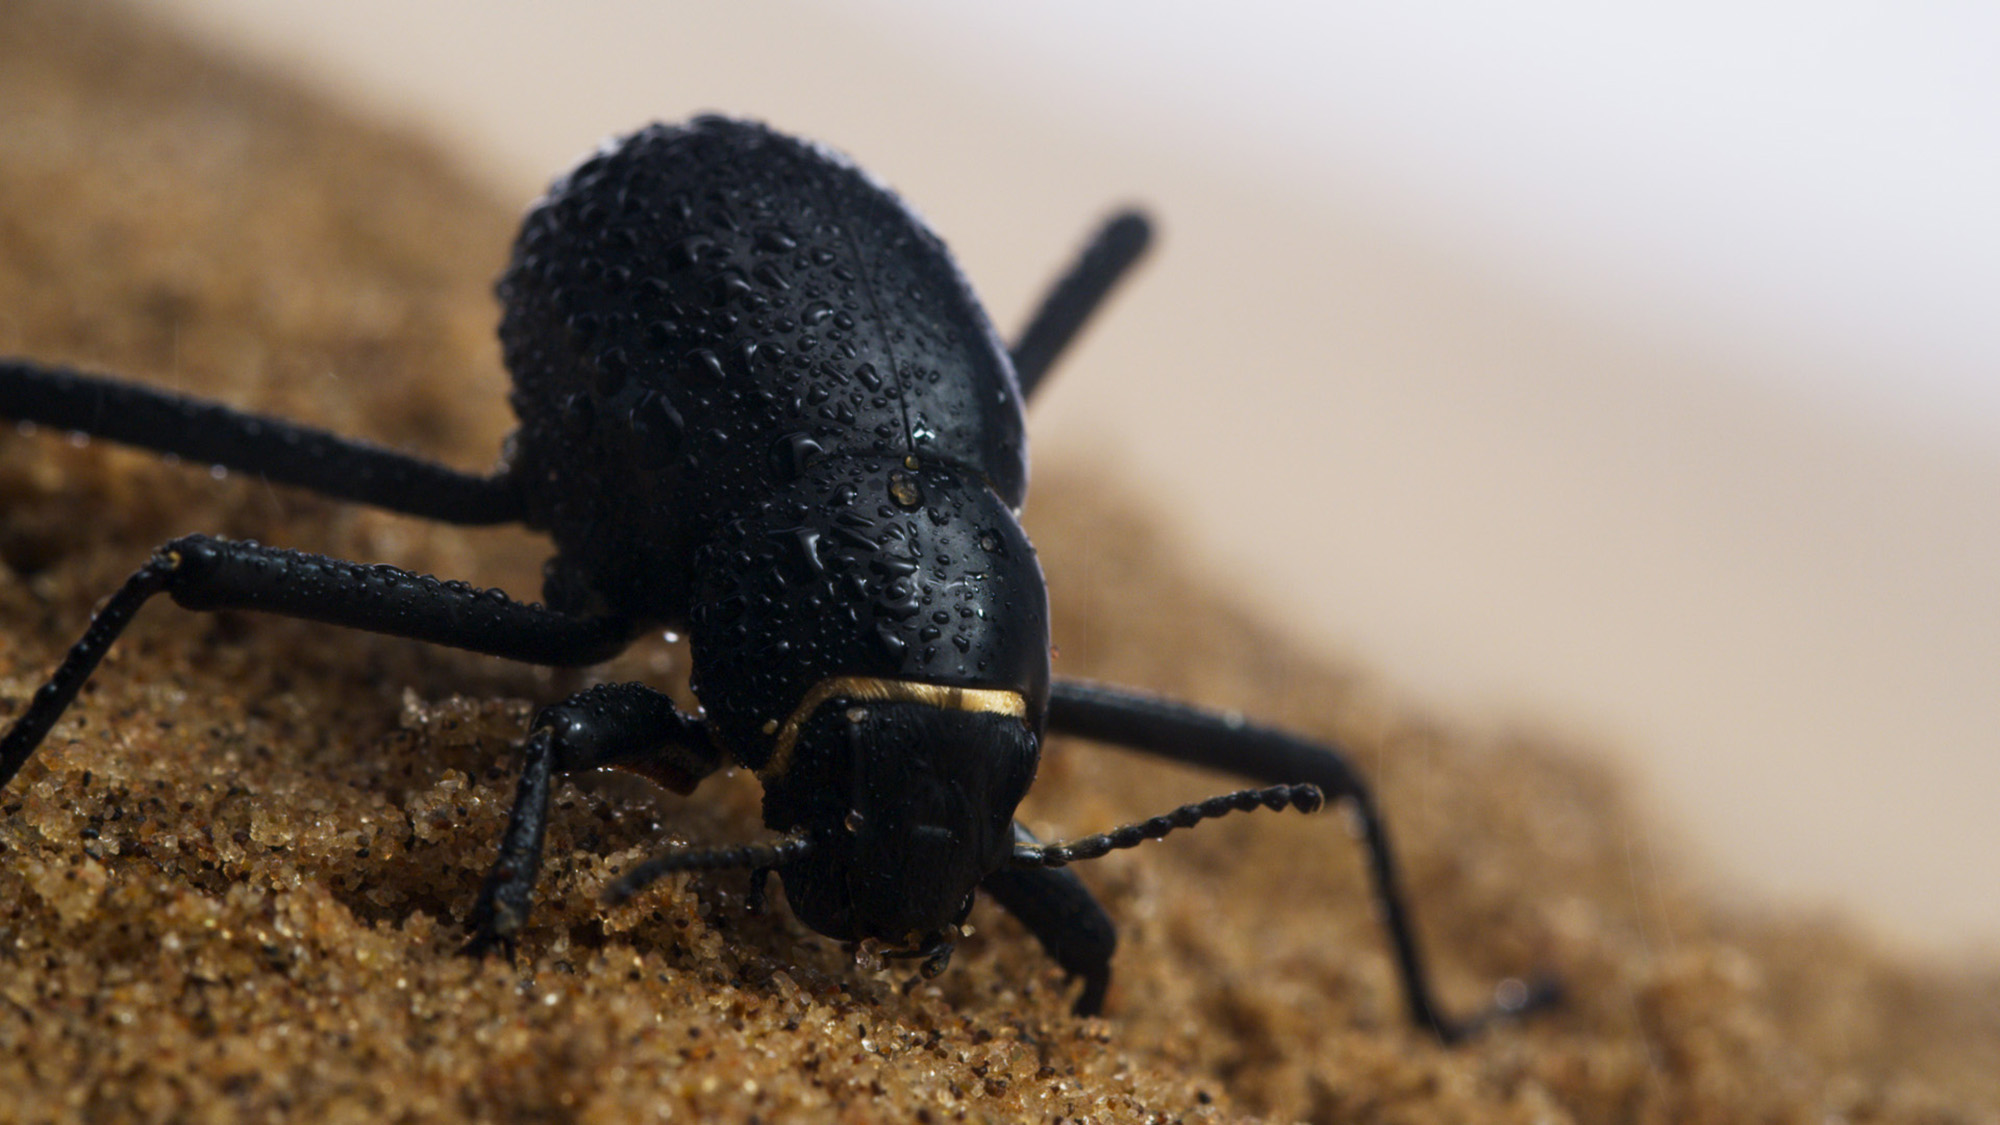 On foggy mornings, the darkling beetle of the Namib Desert climbs to the top of the dunes to collect water from the mist that blows in from the sea